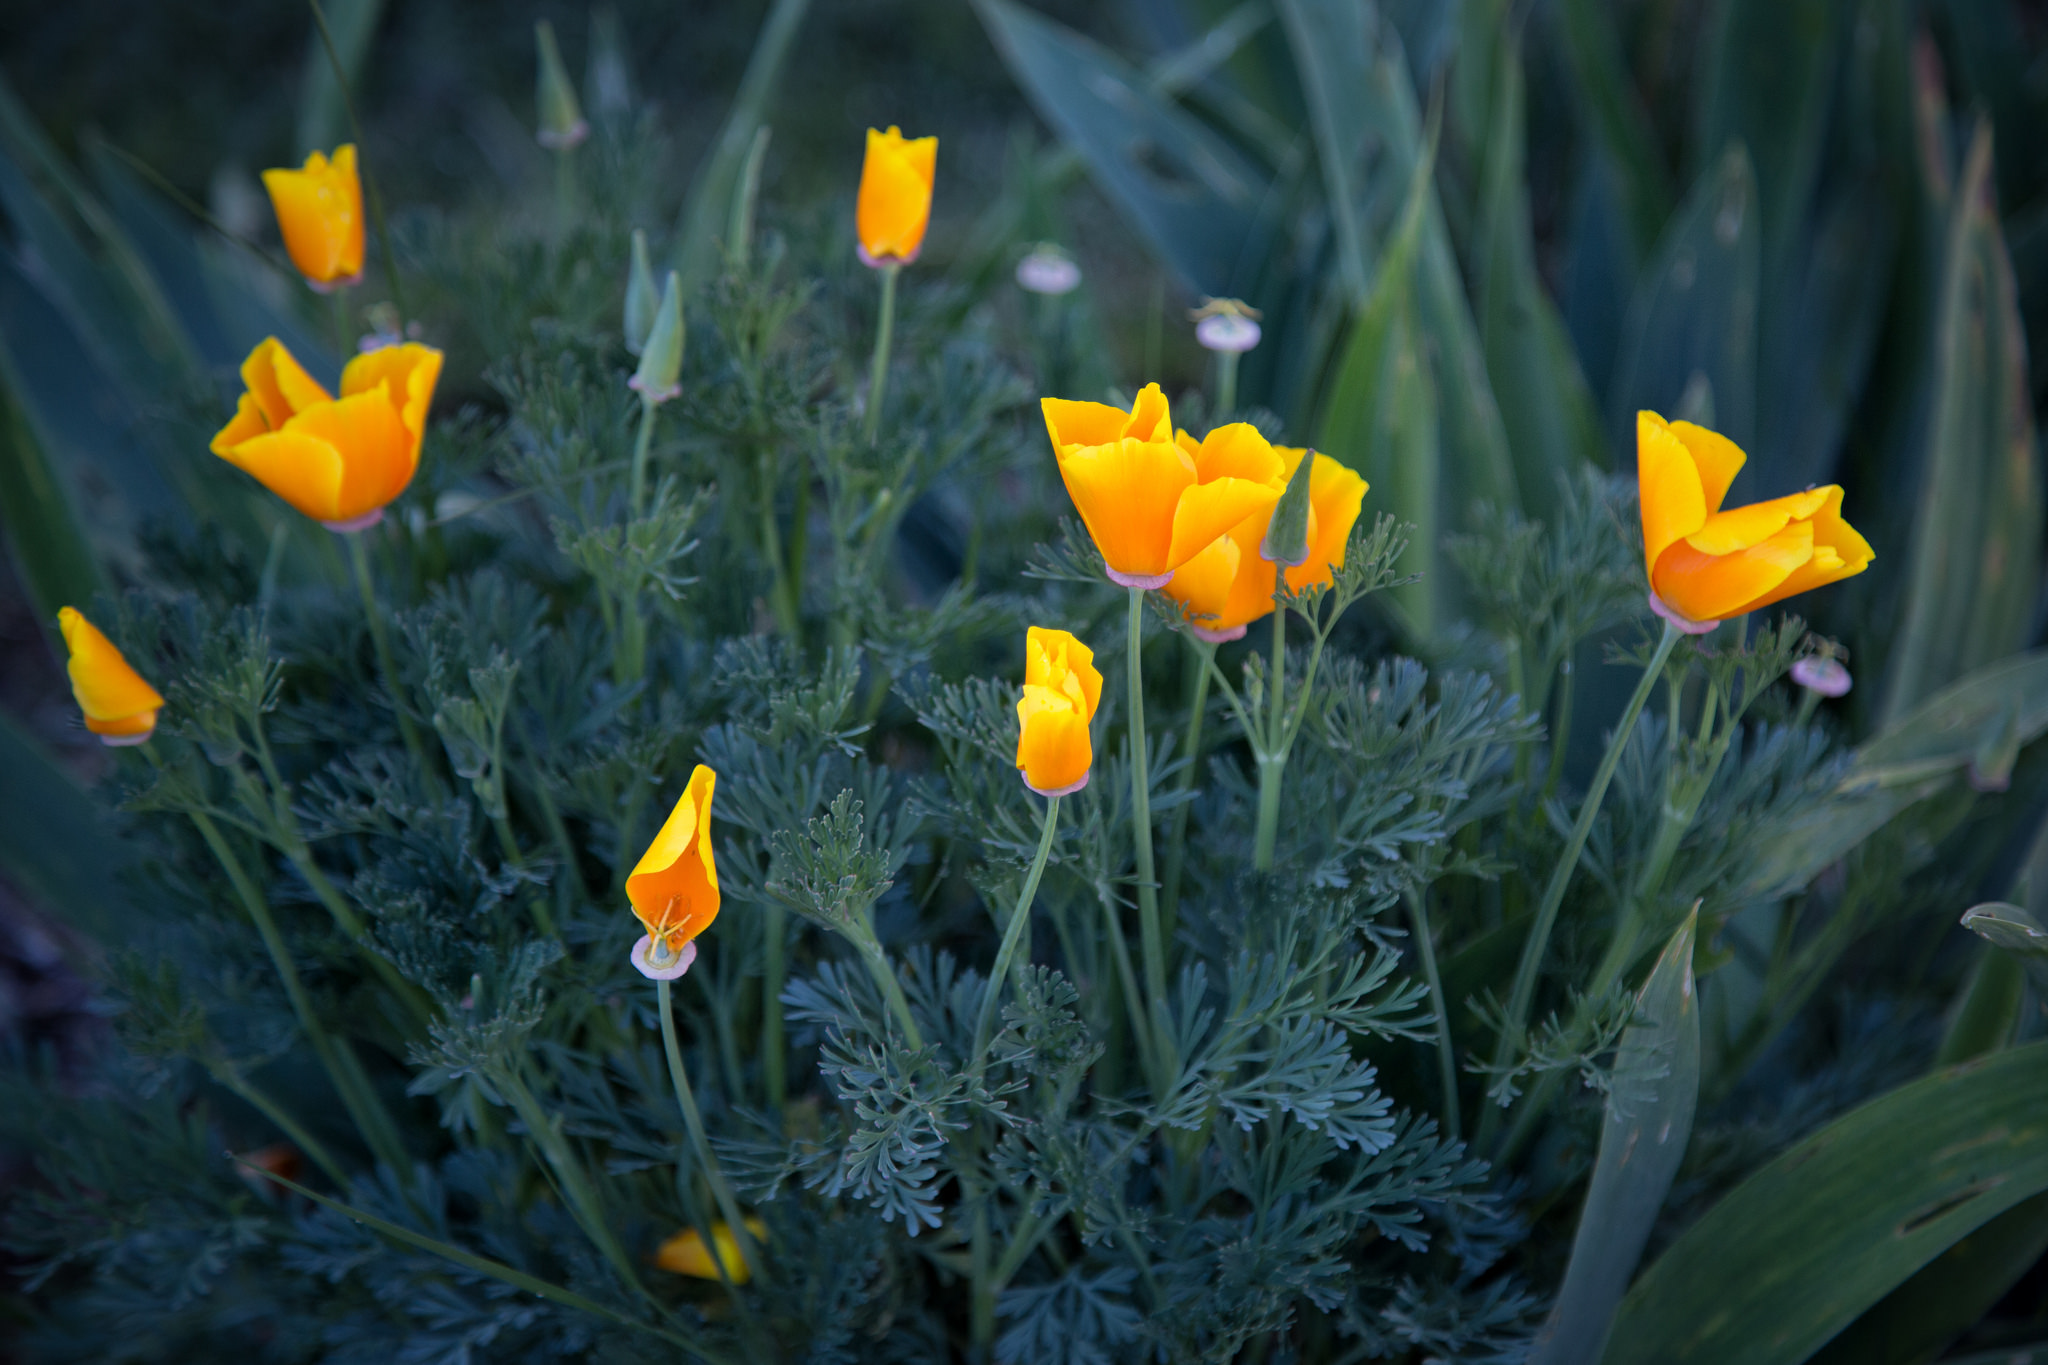 California Poppies are starting to bloom all throughout the garden.